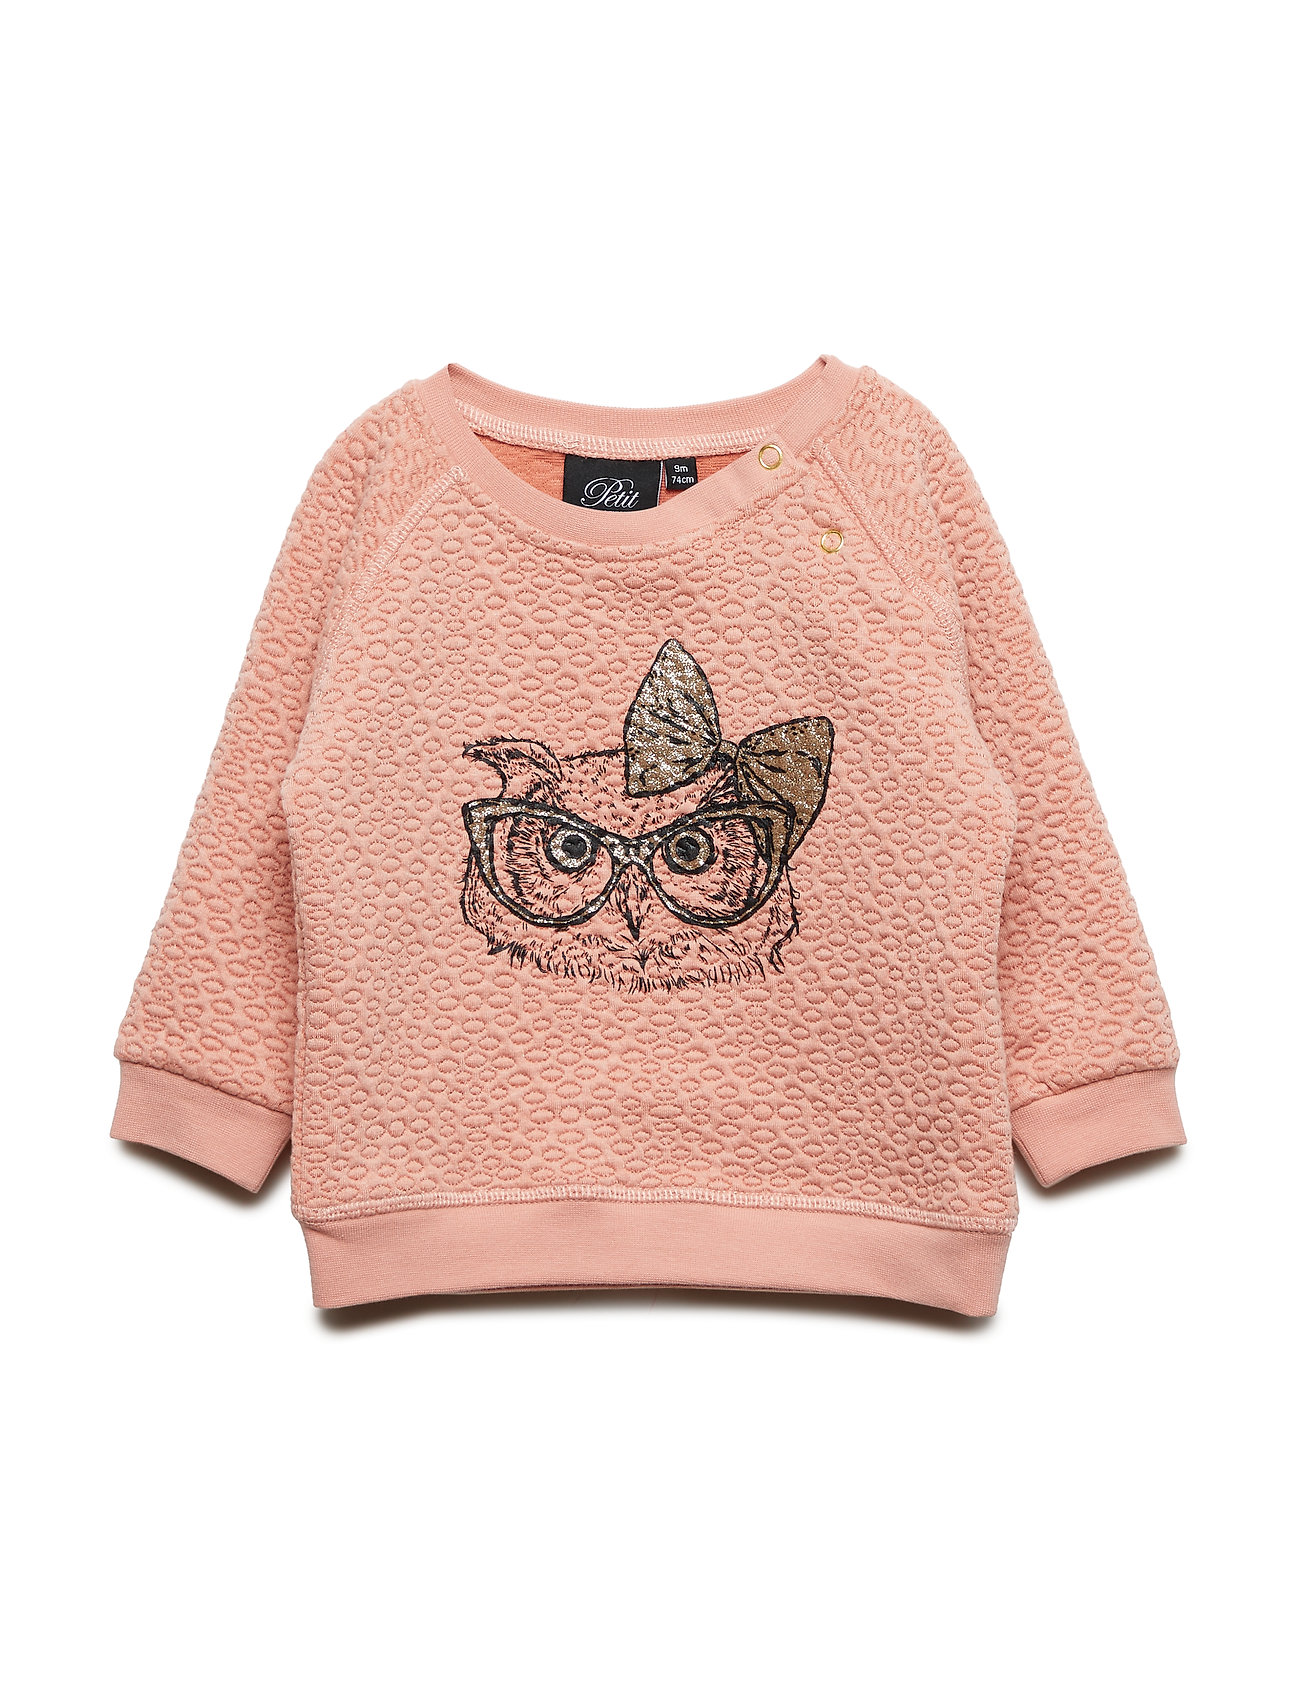 Petit by Sofie Schnoor Sweatshirt - DUSTY ROSE